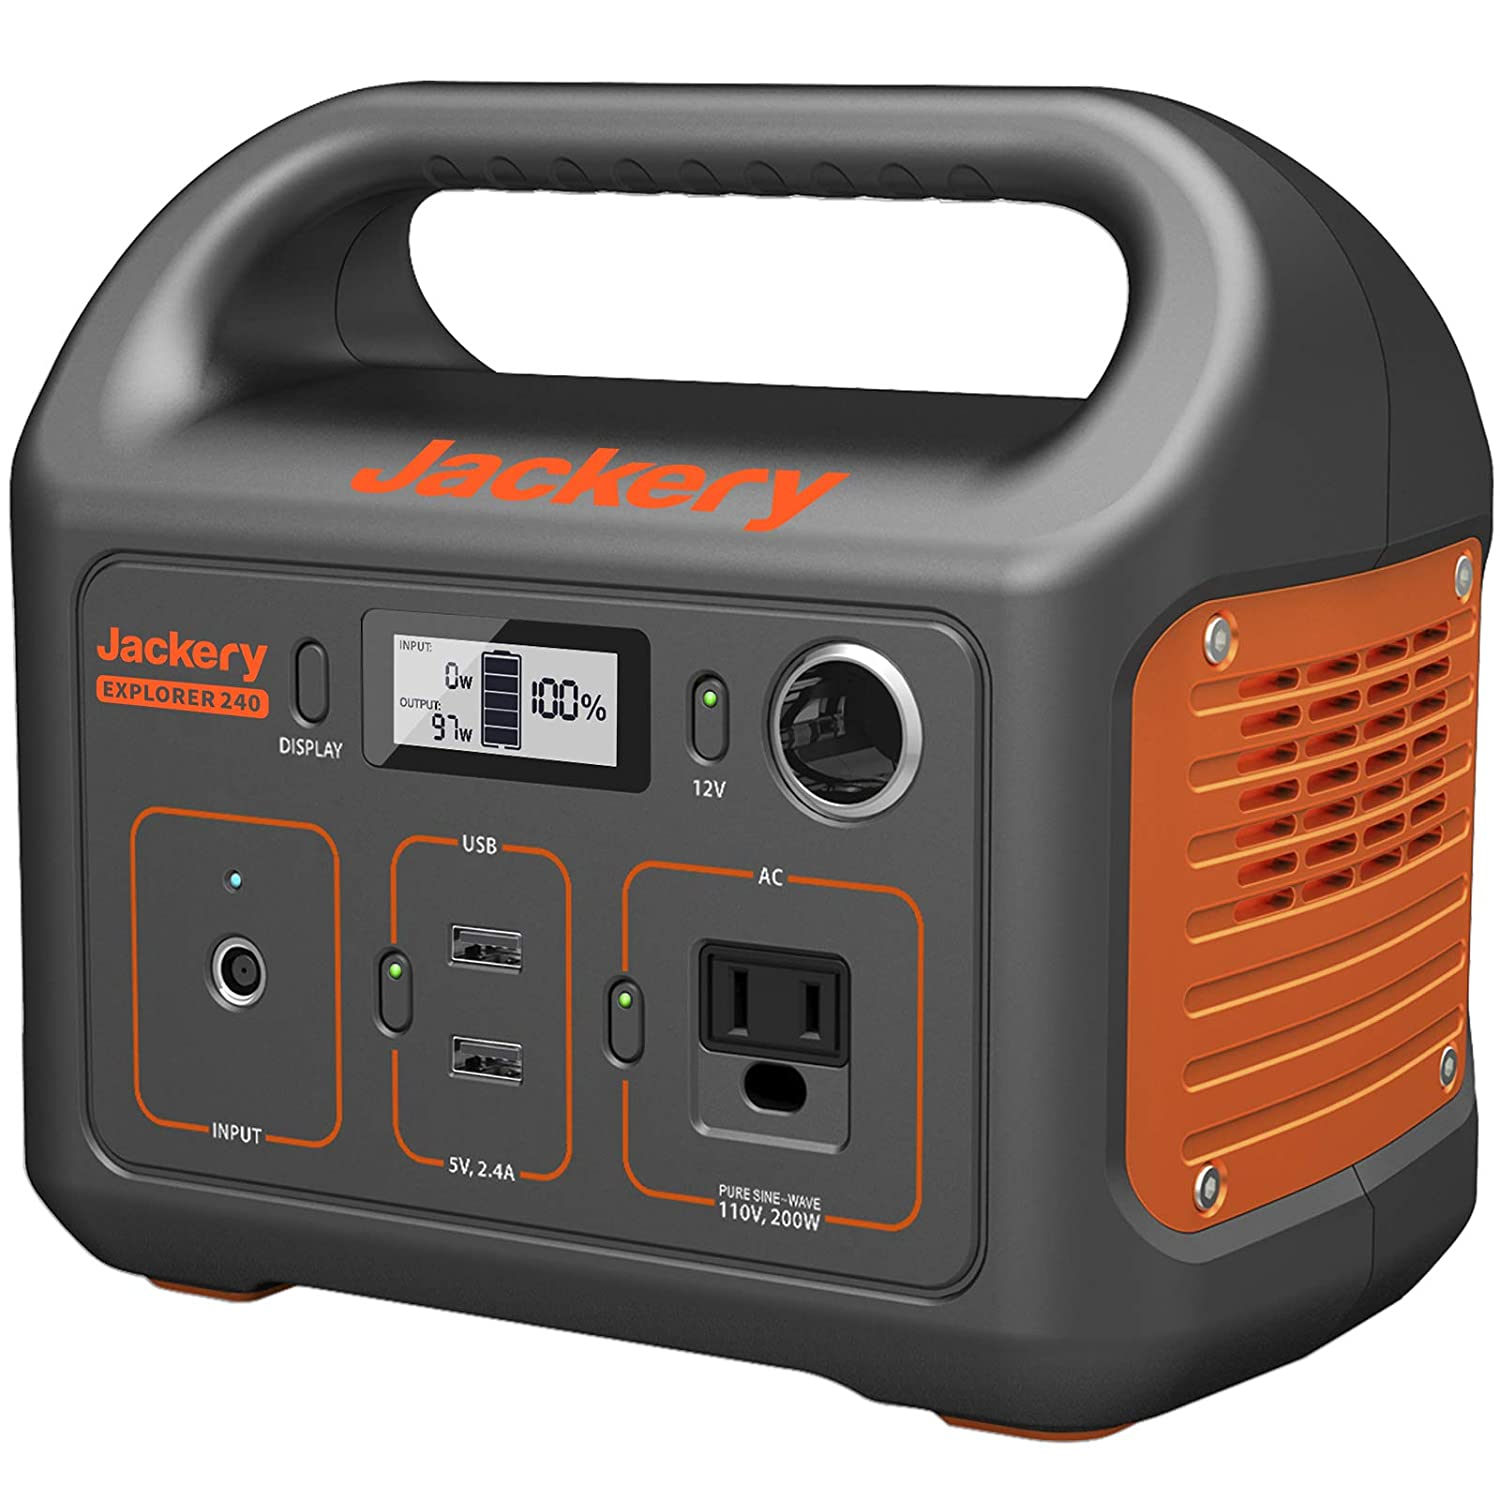 Jackery Portable Power Station Explorer: Power a heater with solar panels + batteries